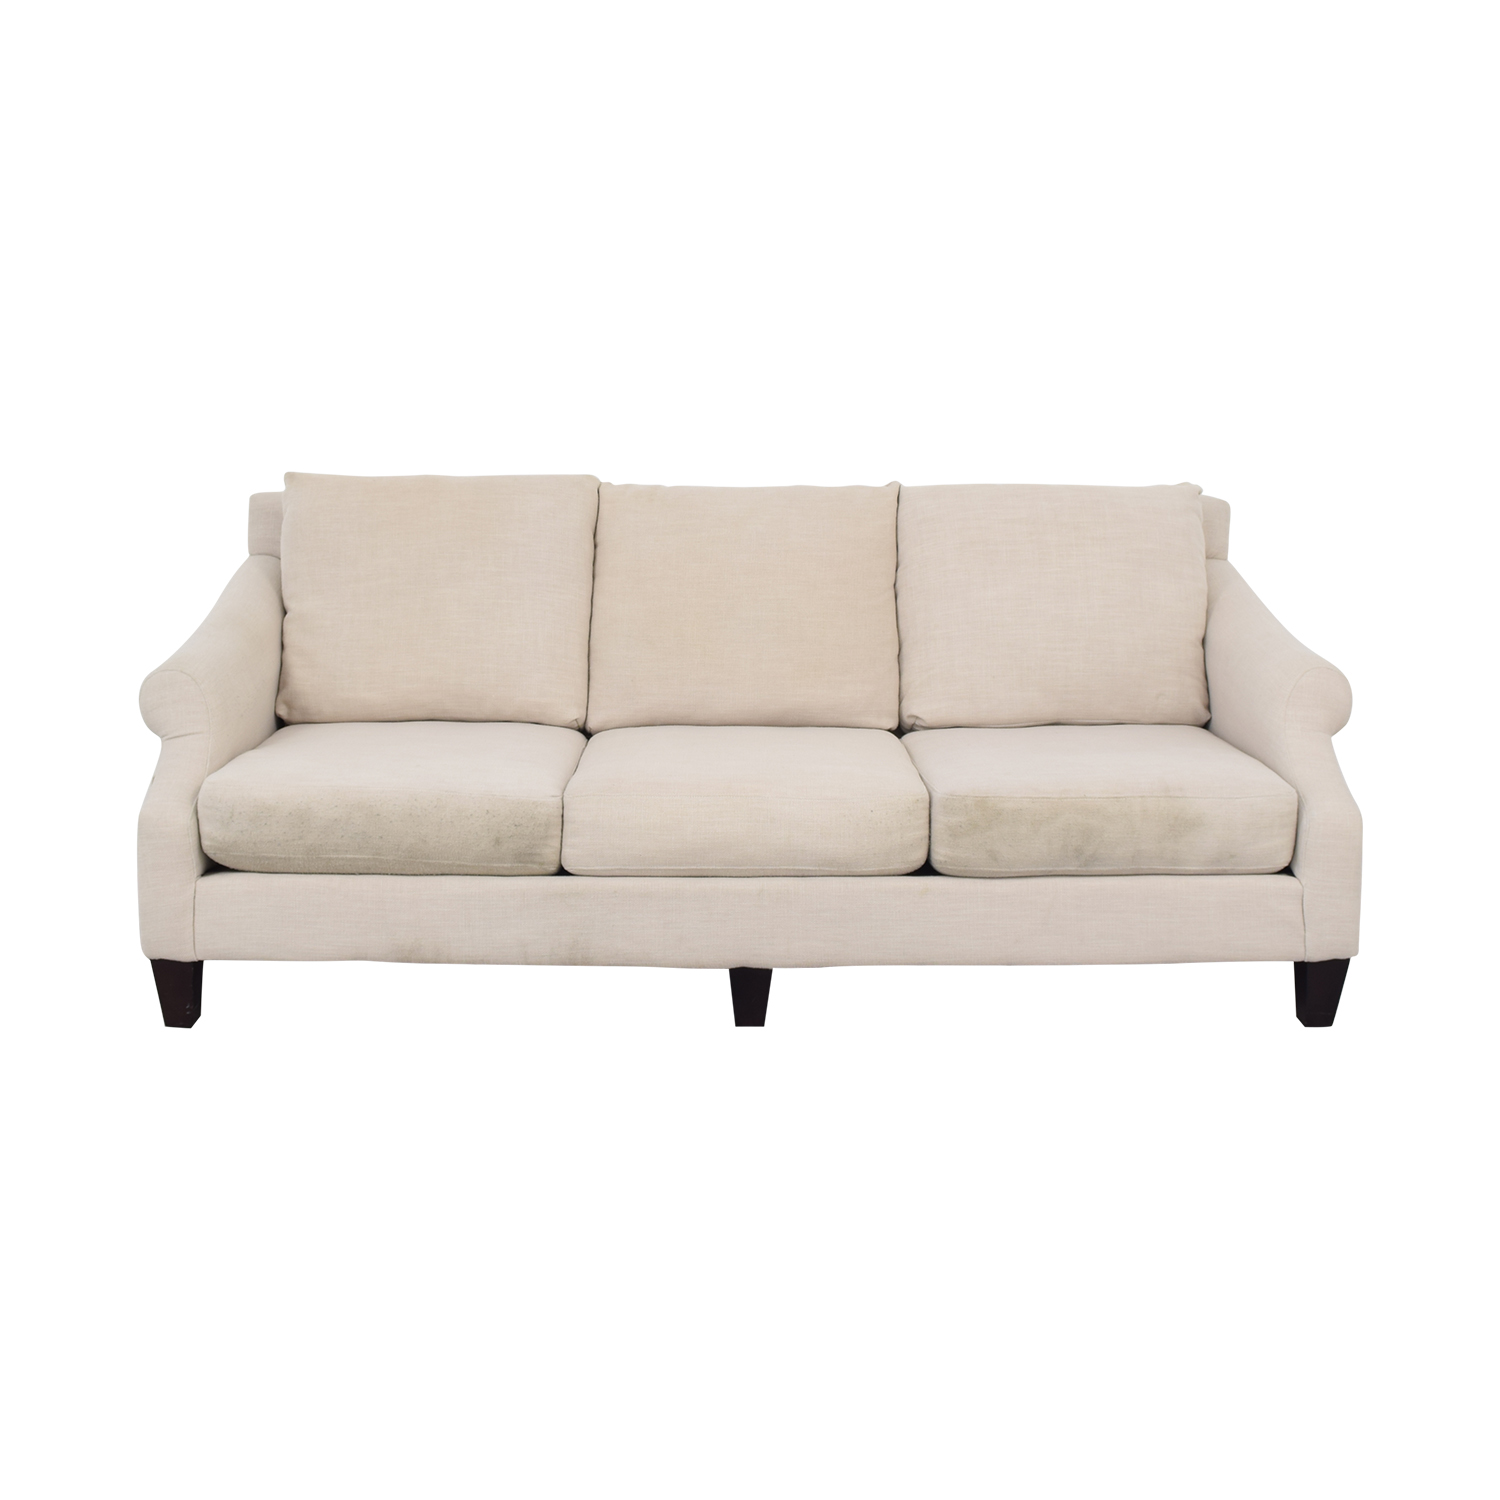 Bauhaus Furniture Bauhaus Furniture Three Seater  Sofa ct